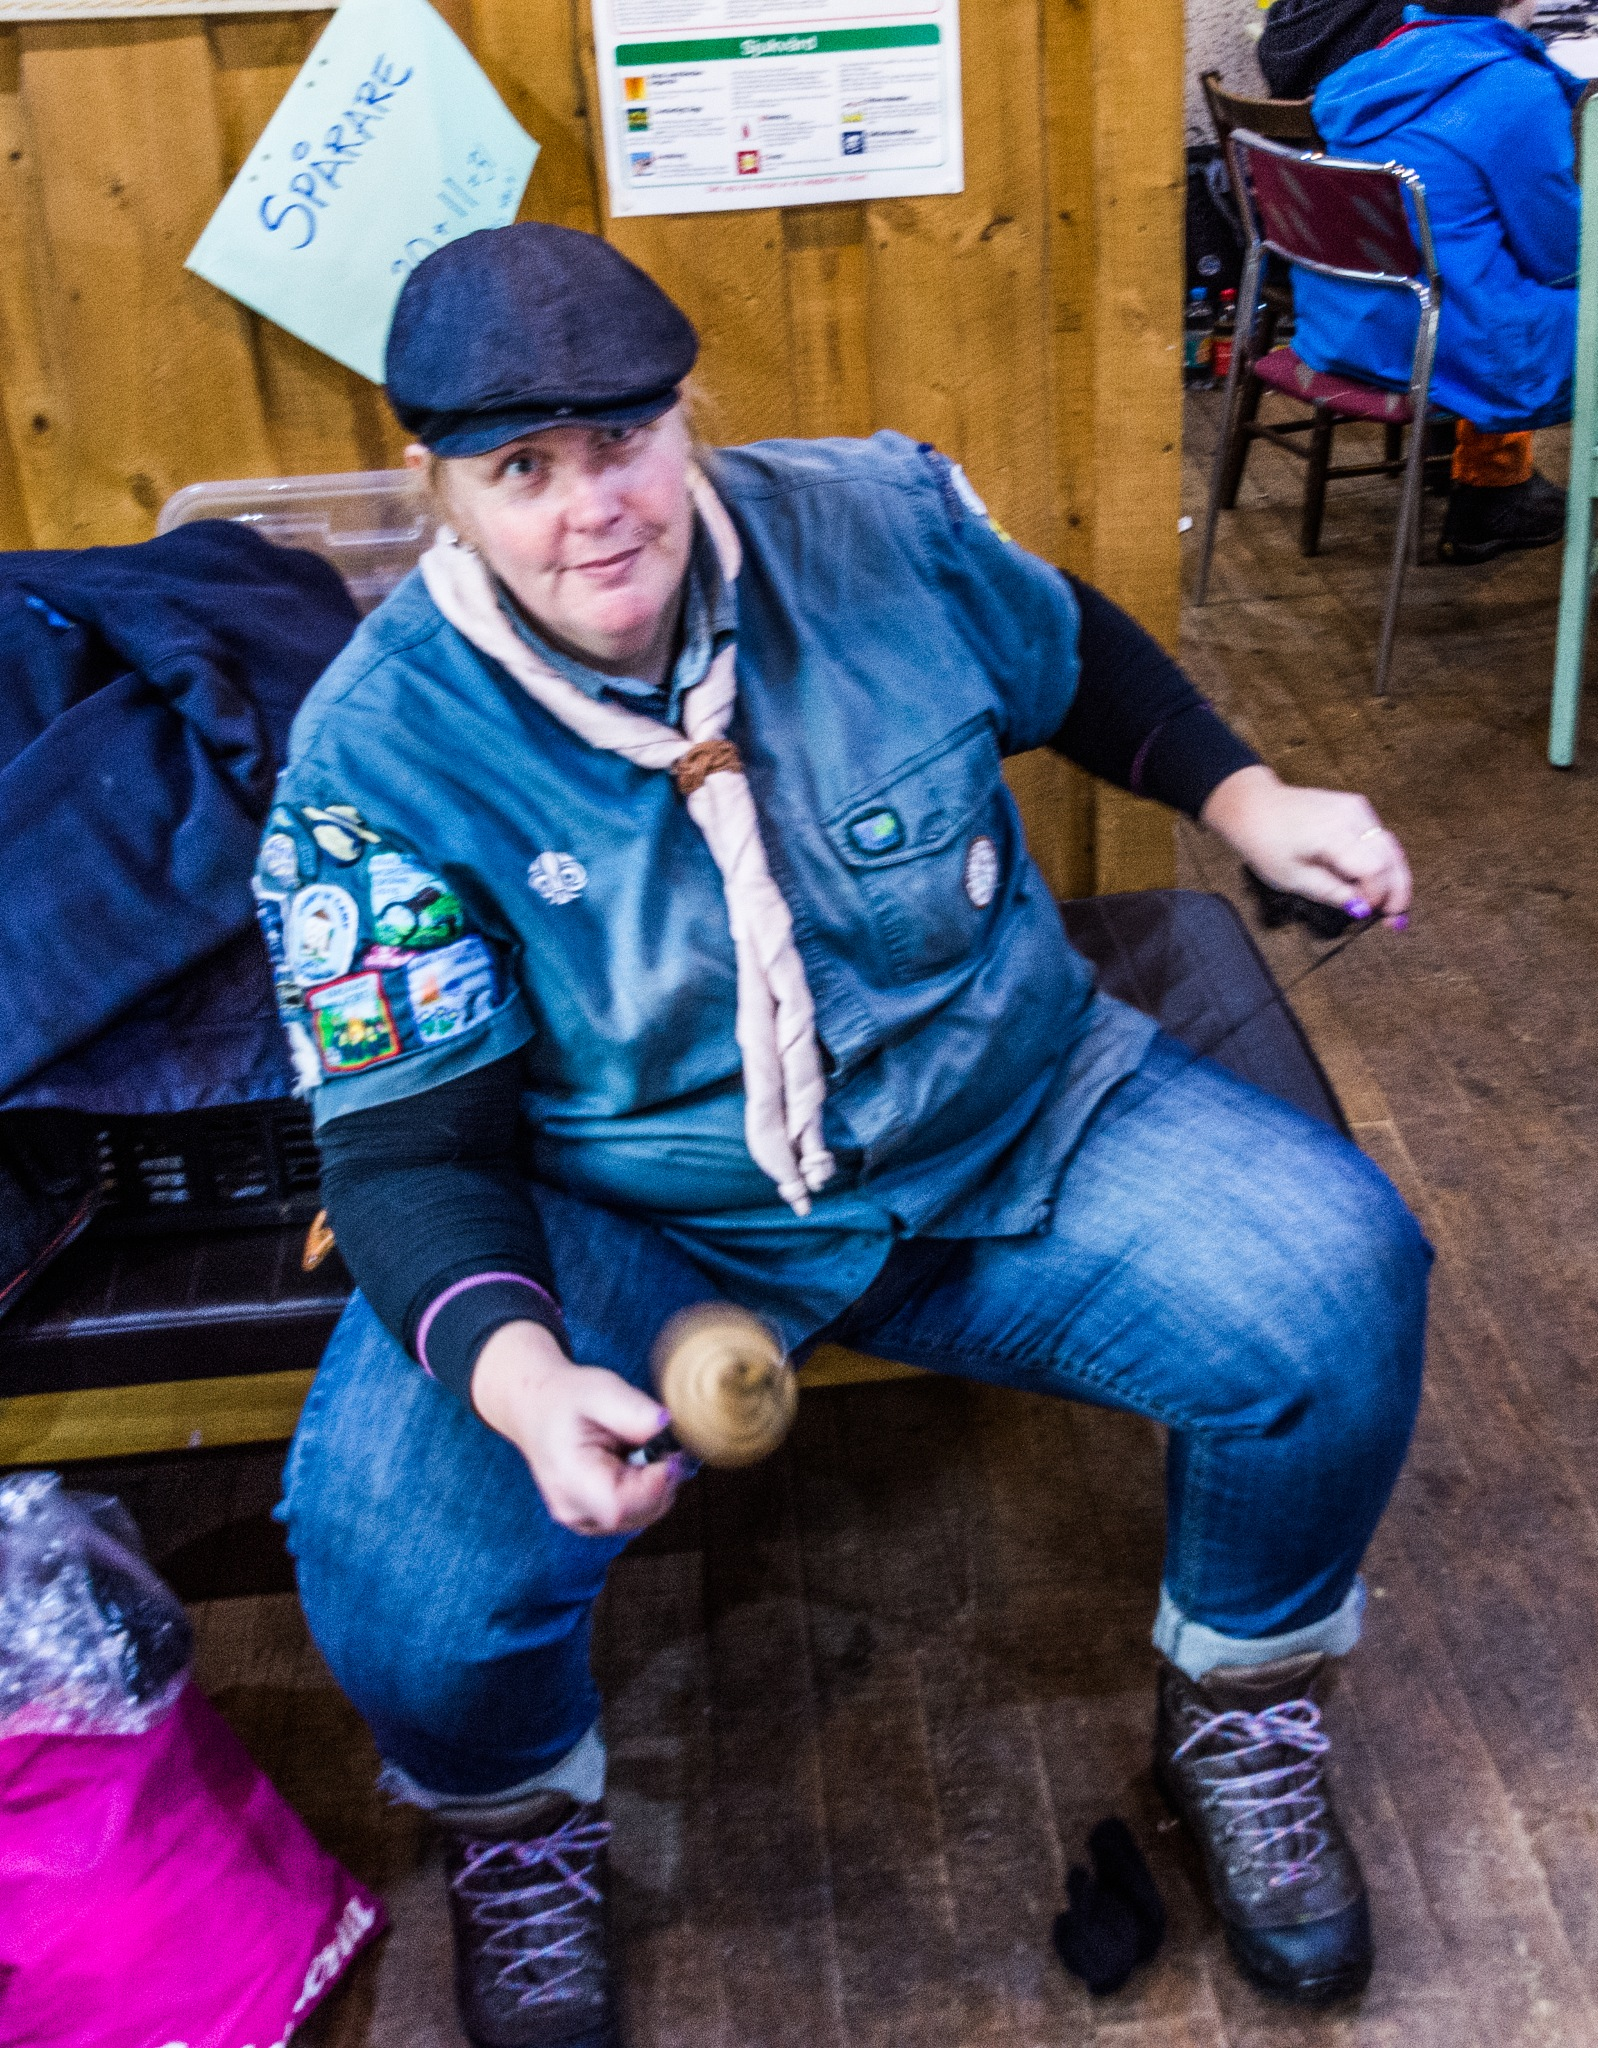 Some scouts spin the yarn instead by Johnny Lythell